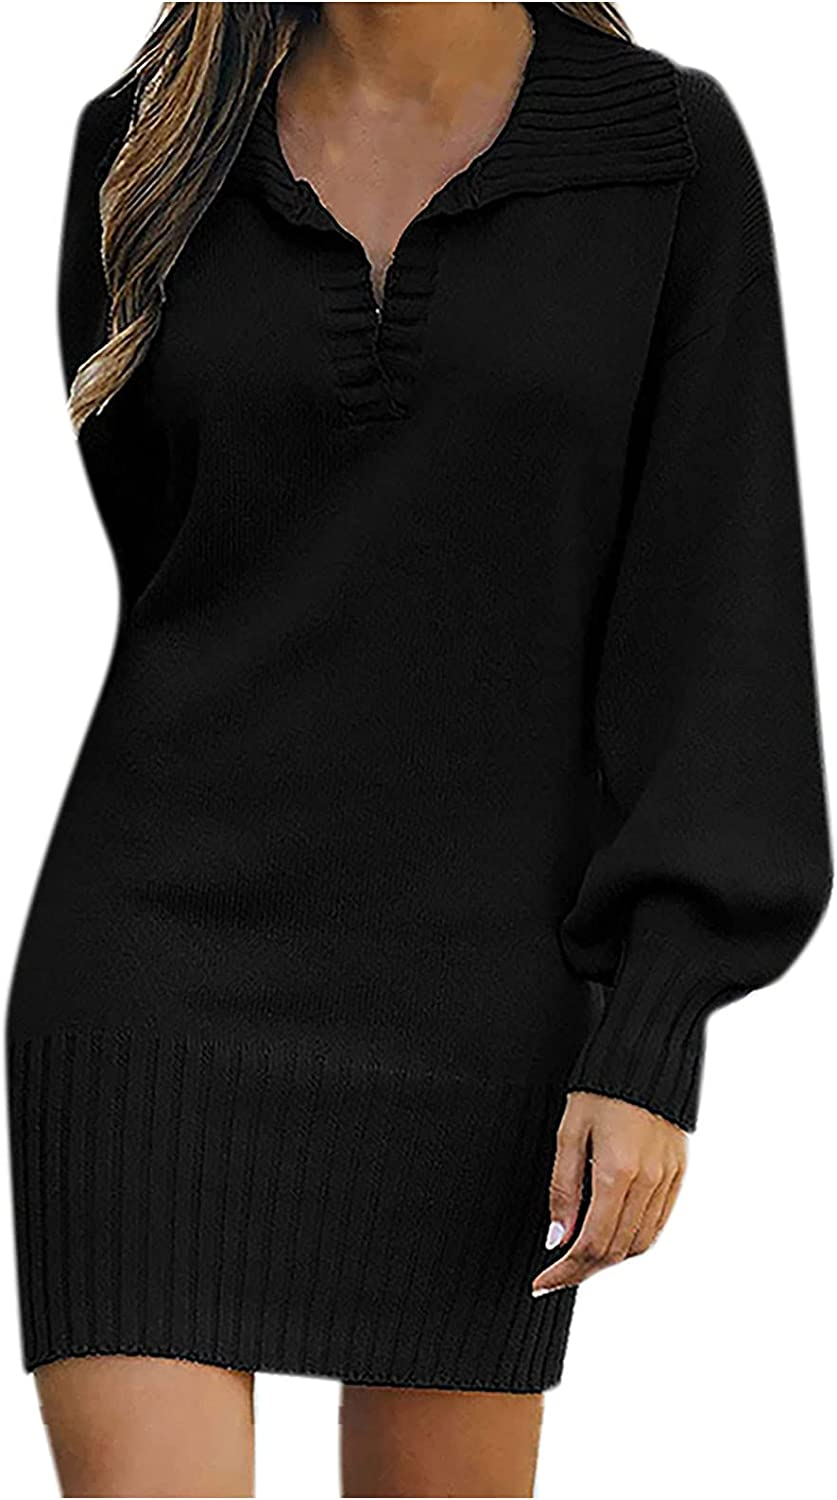 Women Long Sleeve Dresses Collar Casual Solid Soft Pullover Long Sweaters Summer Autumn